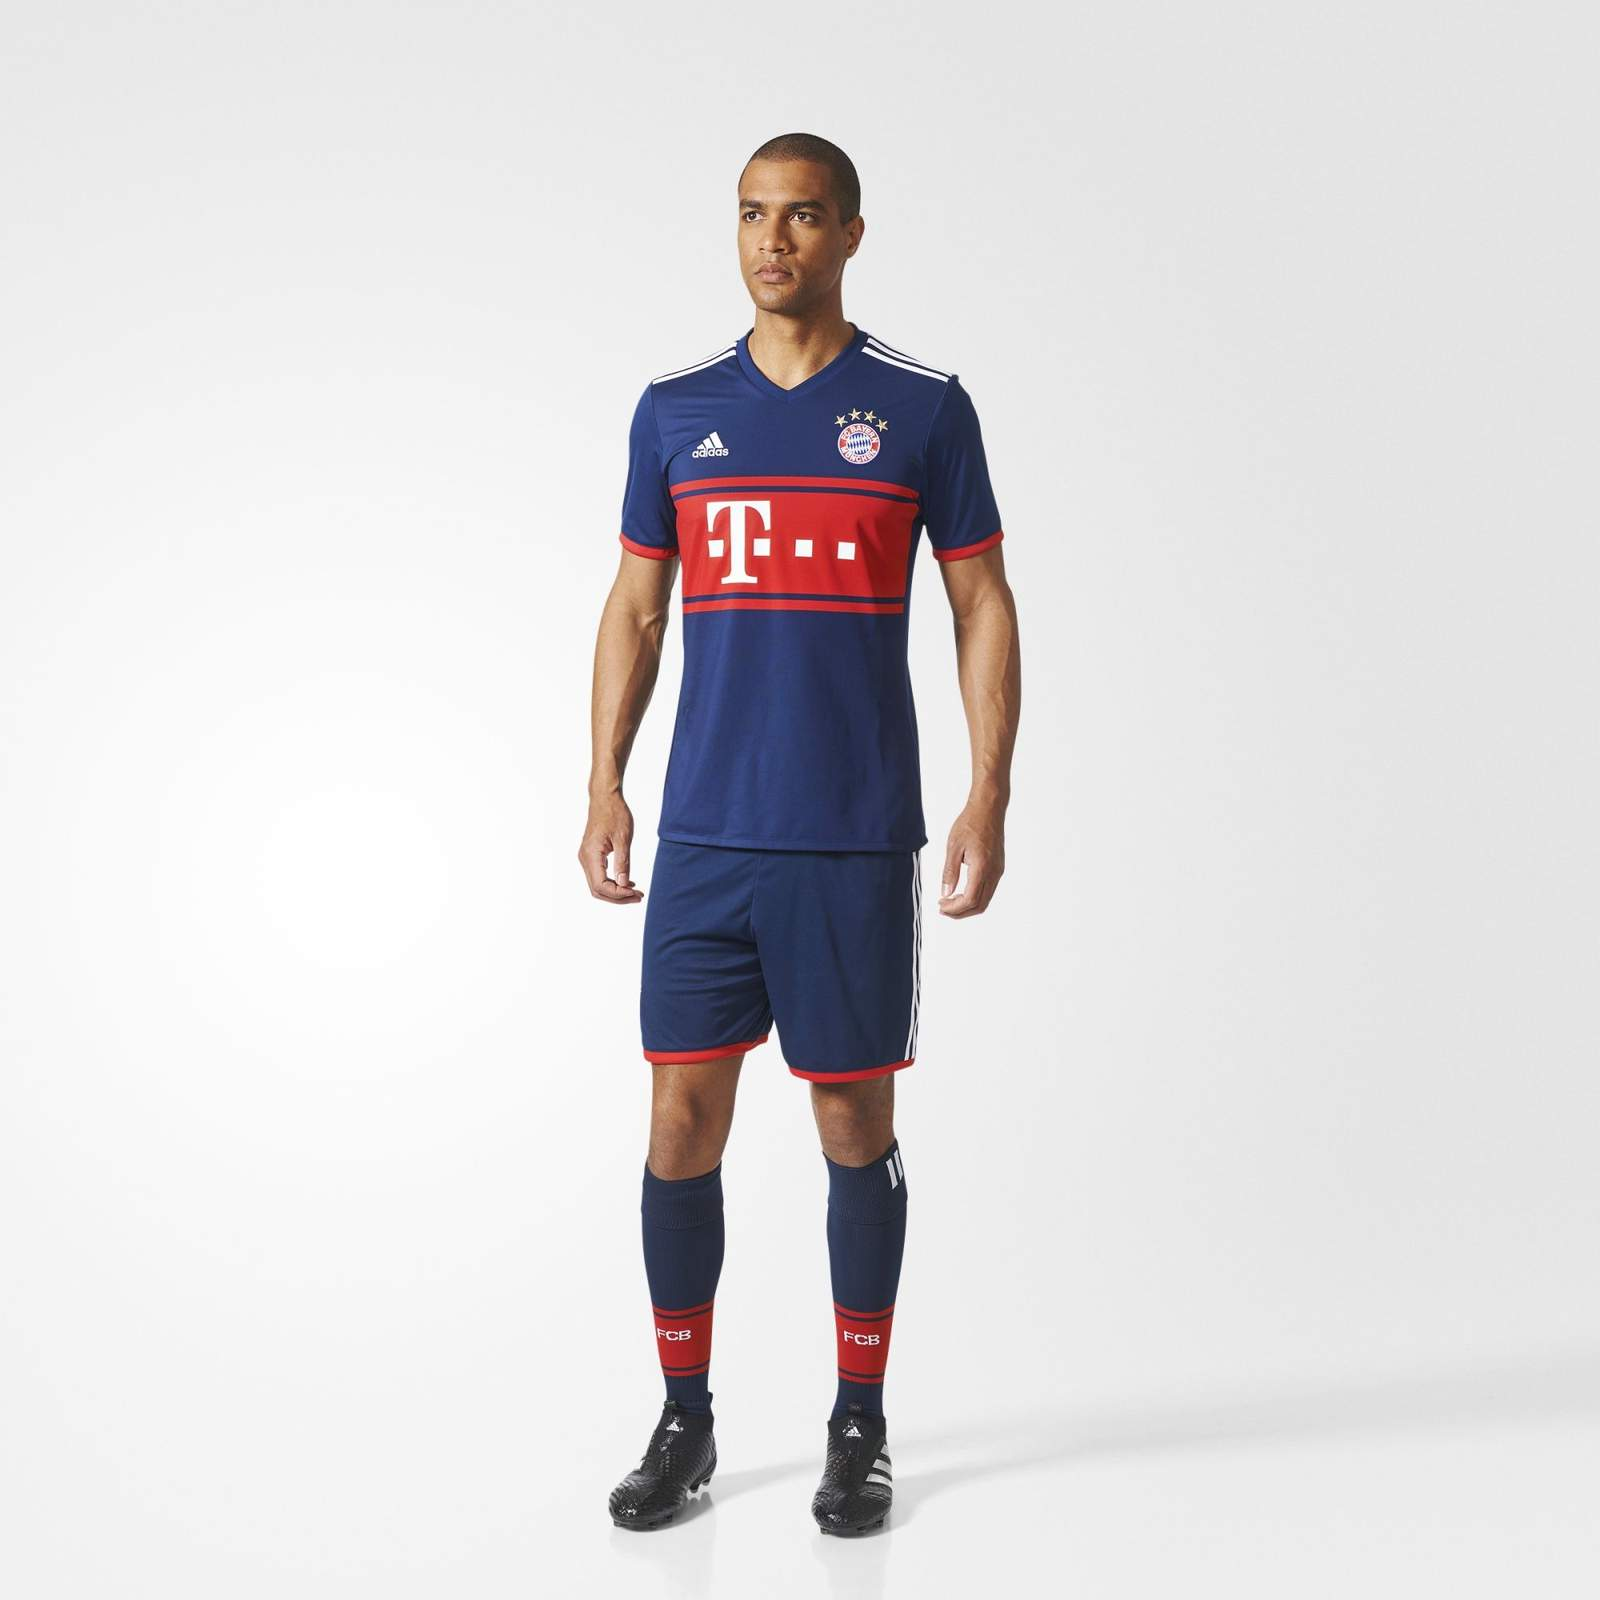 bayern-munich-17-18-away-kit-5.jpg